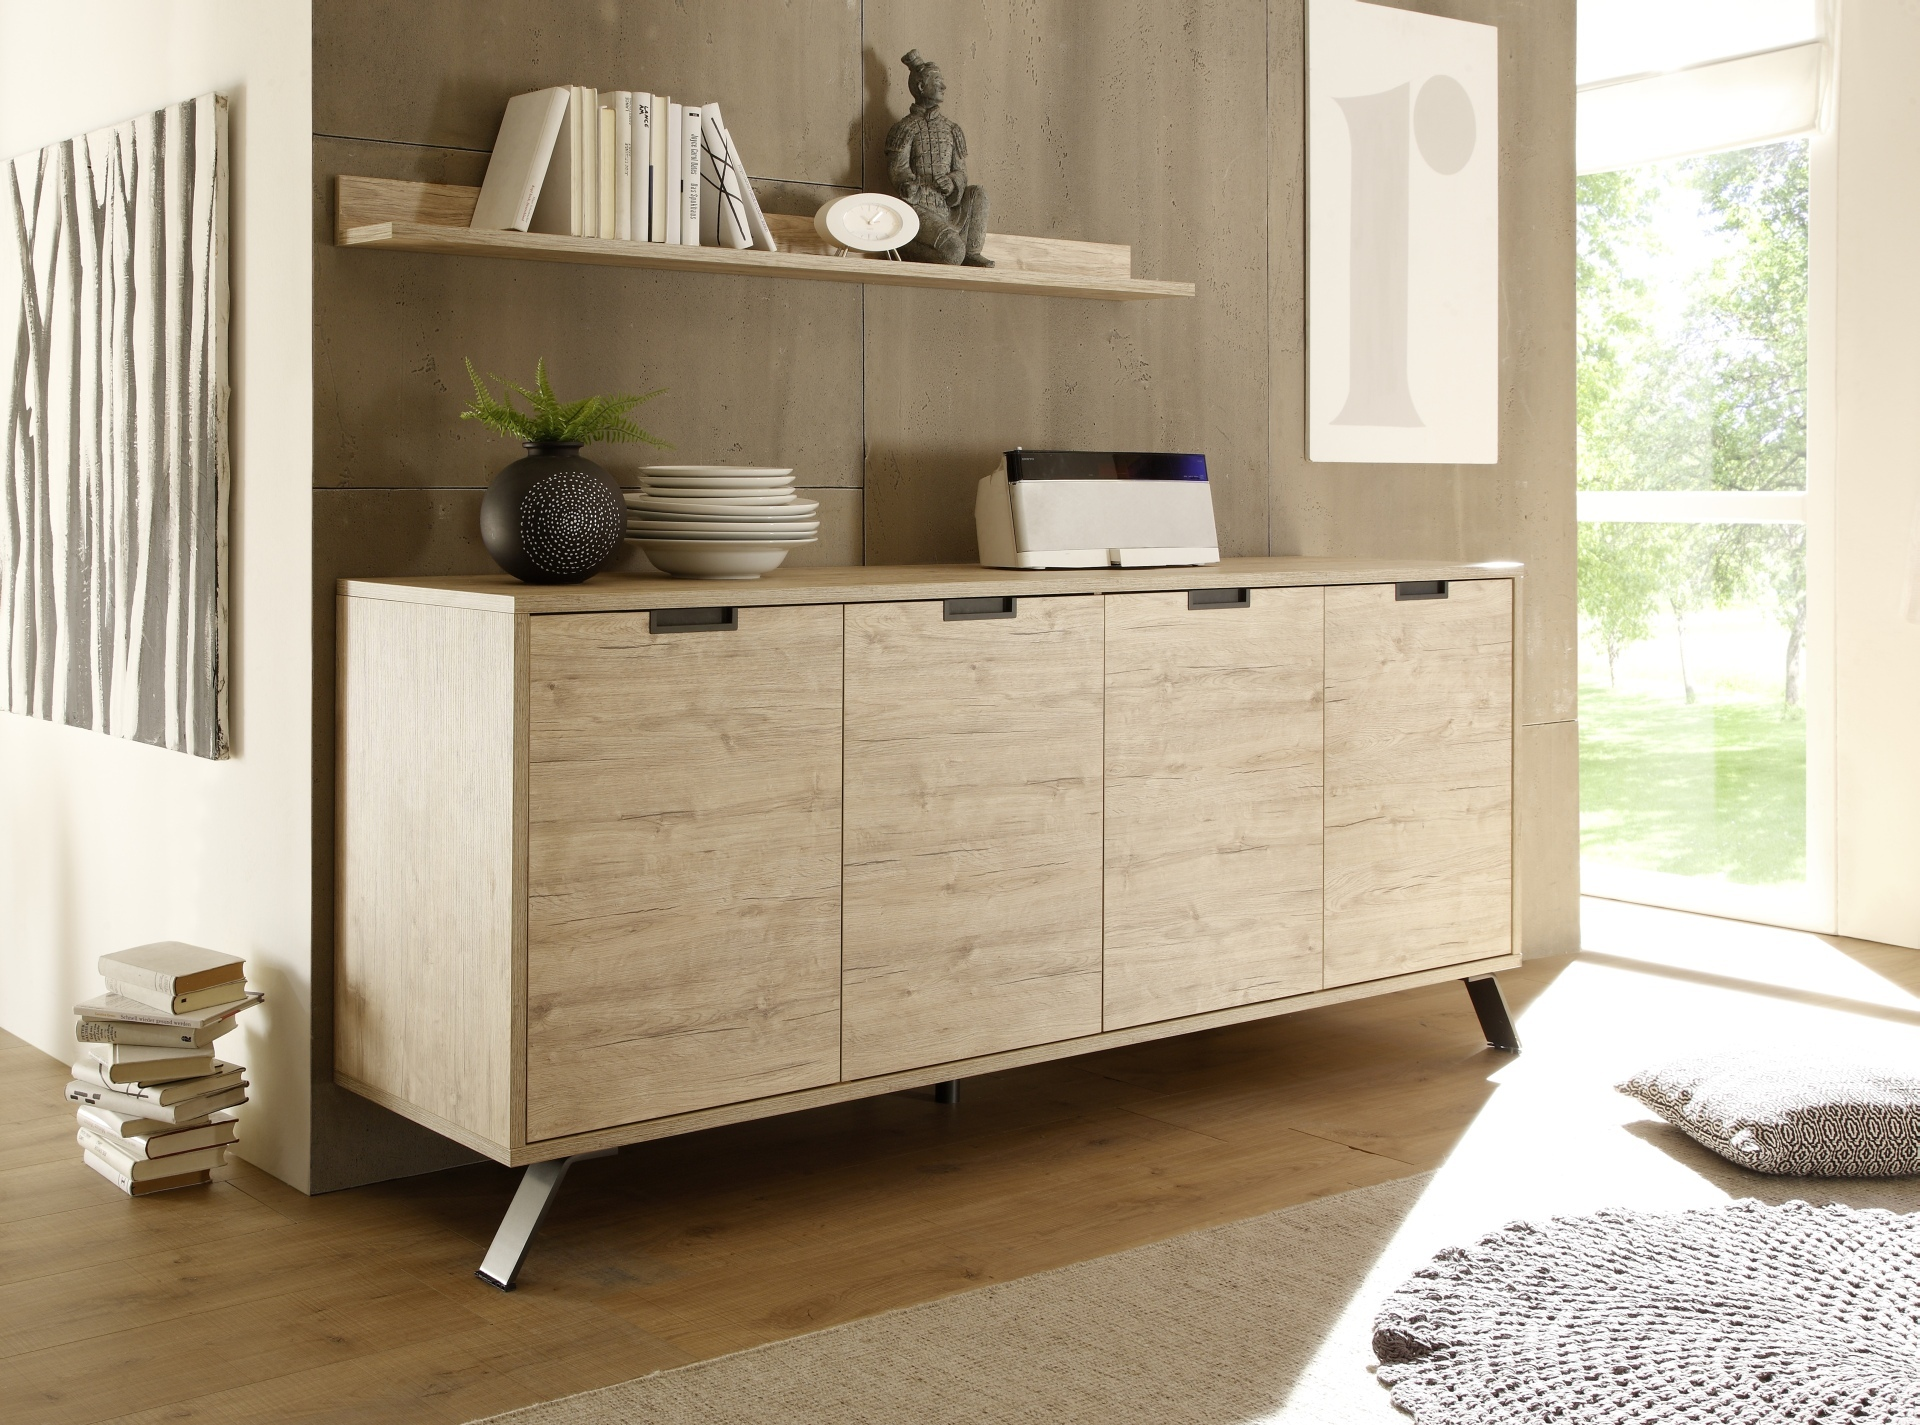 Sideboard Real Contemporary Light Oak 4 Door Dining Buffet With Soft Closing Doors